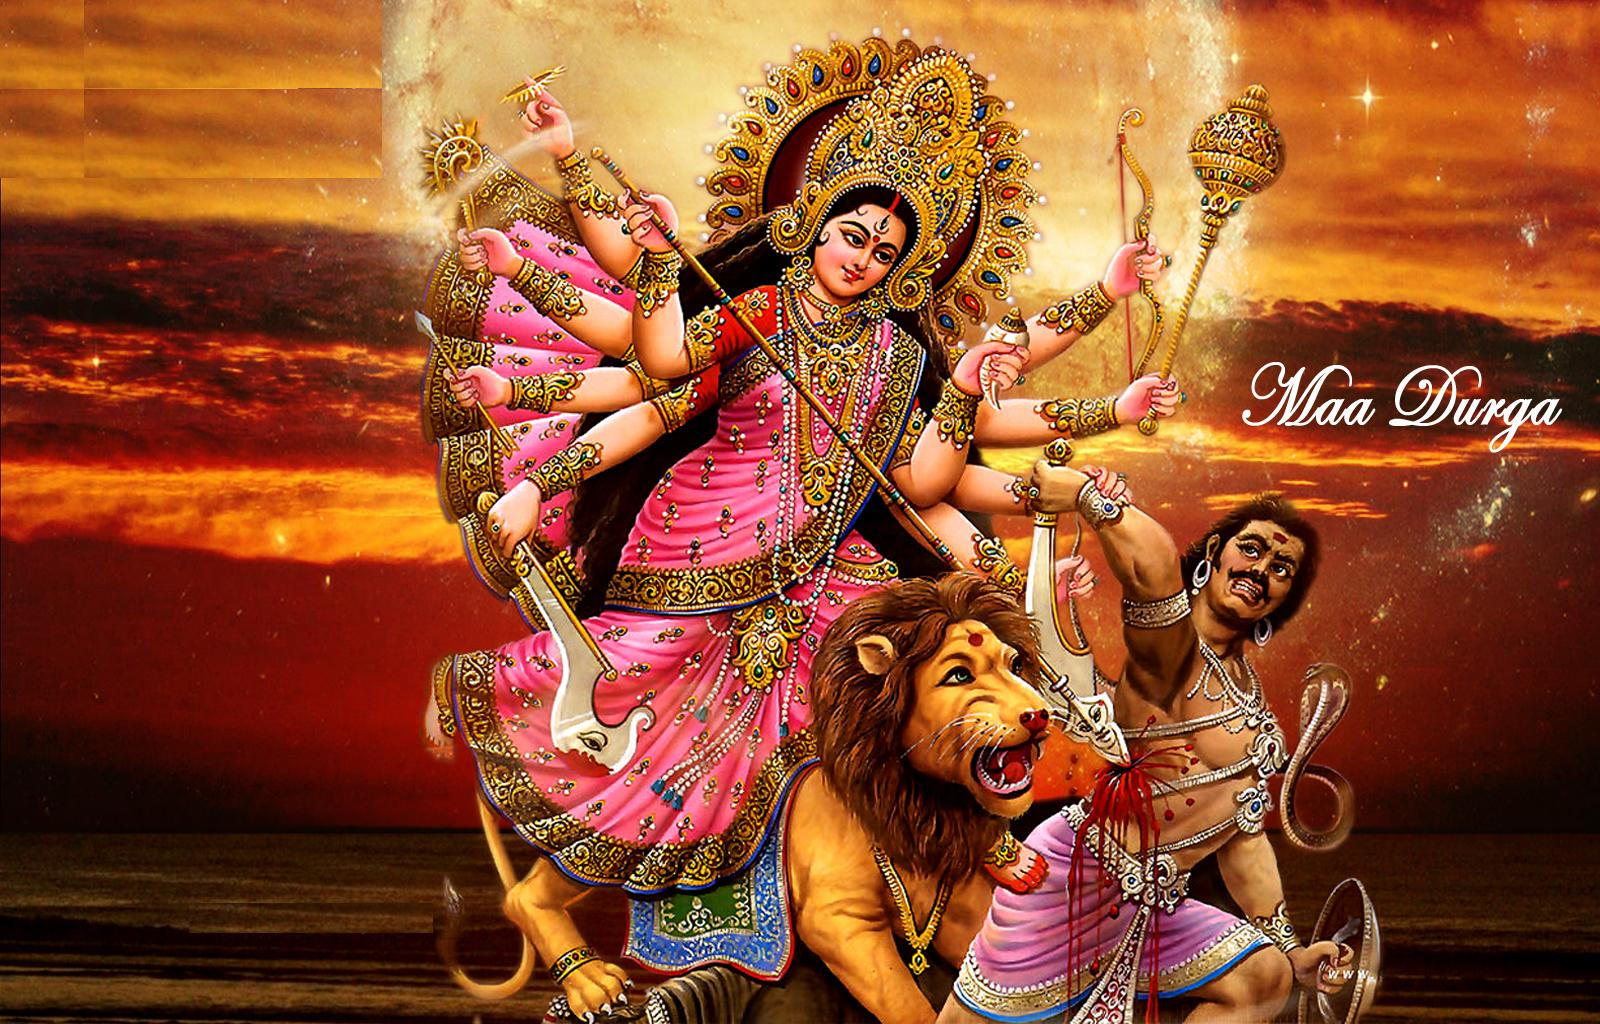 Goddess Durga Puja hd Wallpapers, Images, Pictures, Photos, Vector, Graphics, Pics, FB Facebook Covers, Greeting Cards